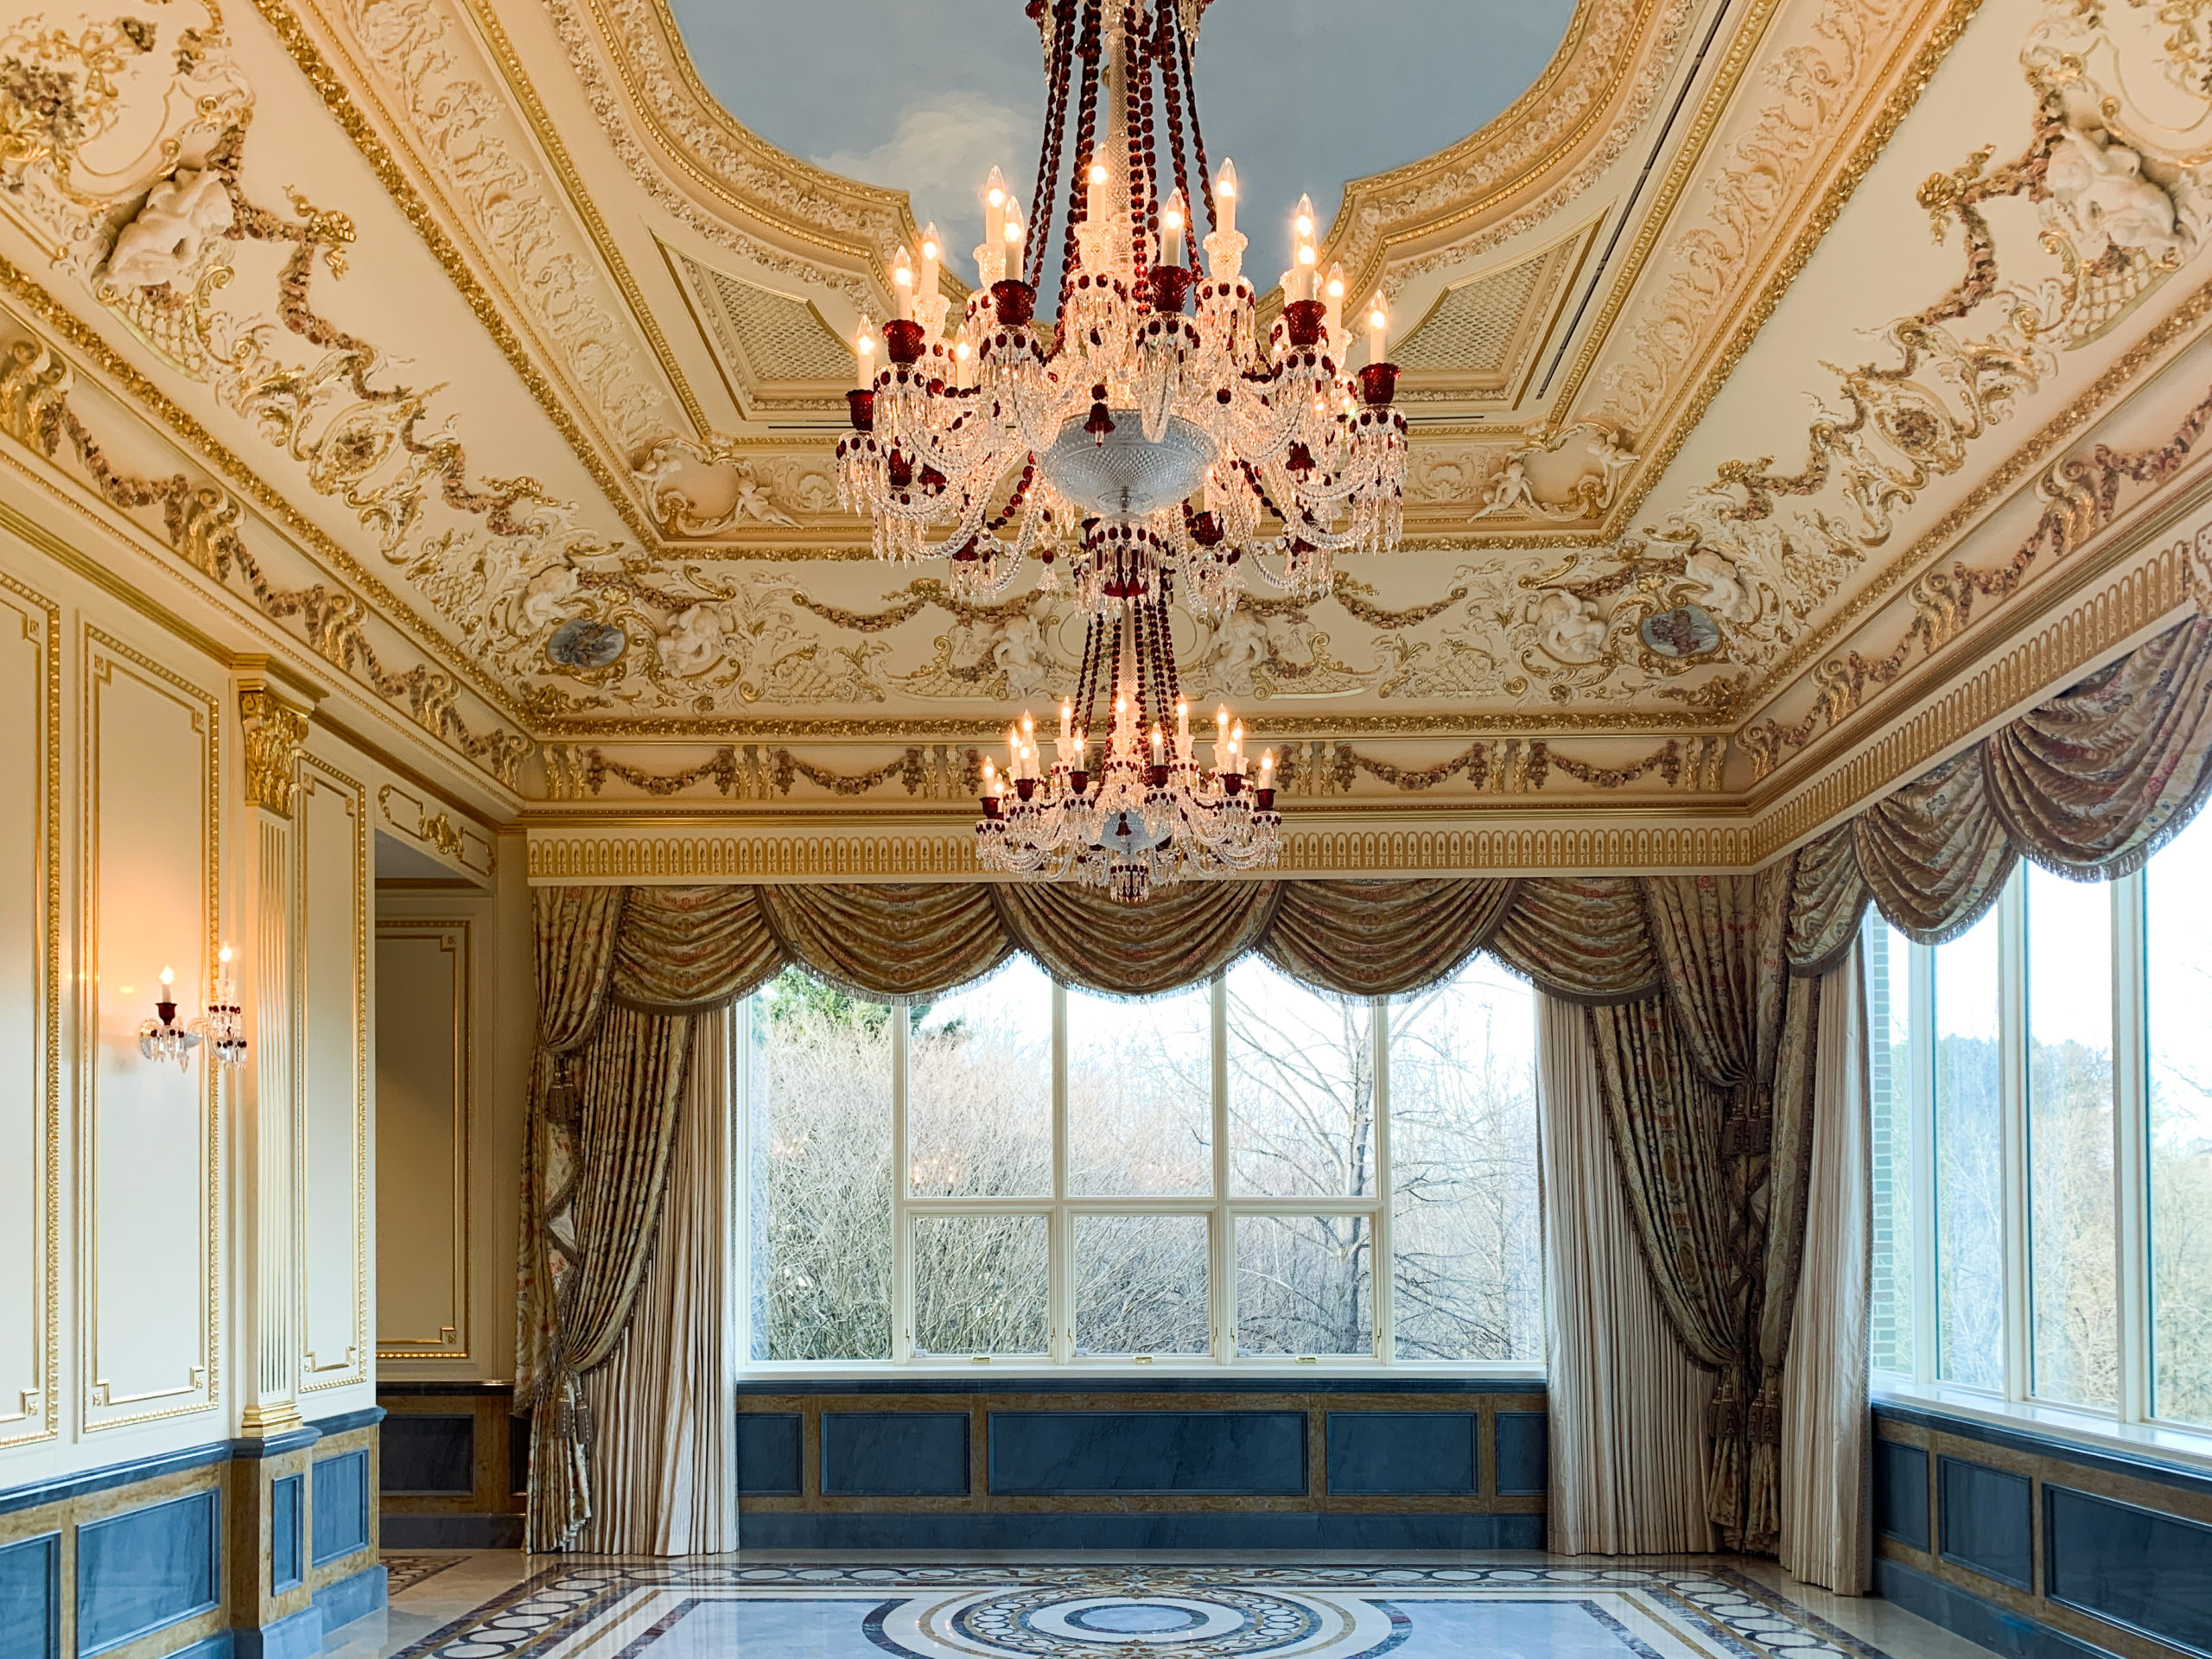 Luxury Interior Design with gold and blue custom plaster molding